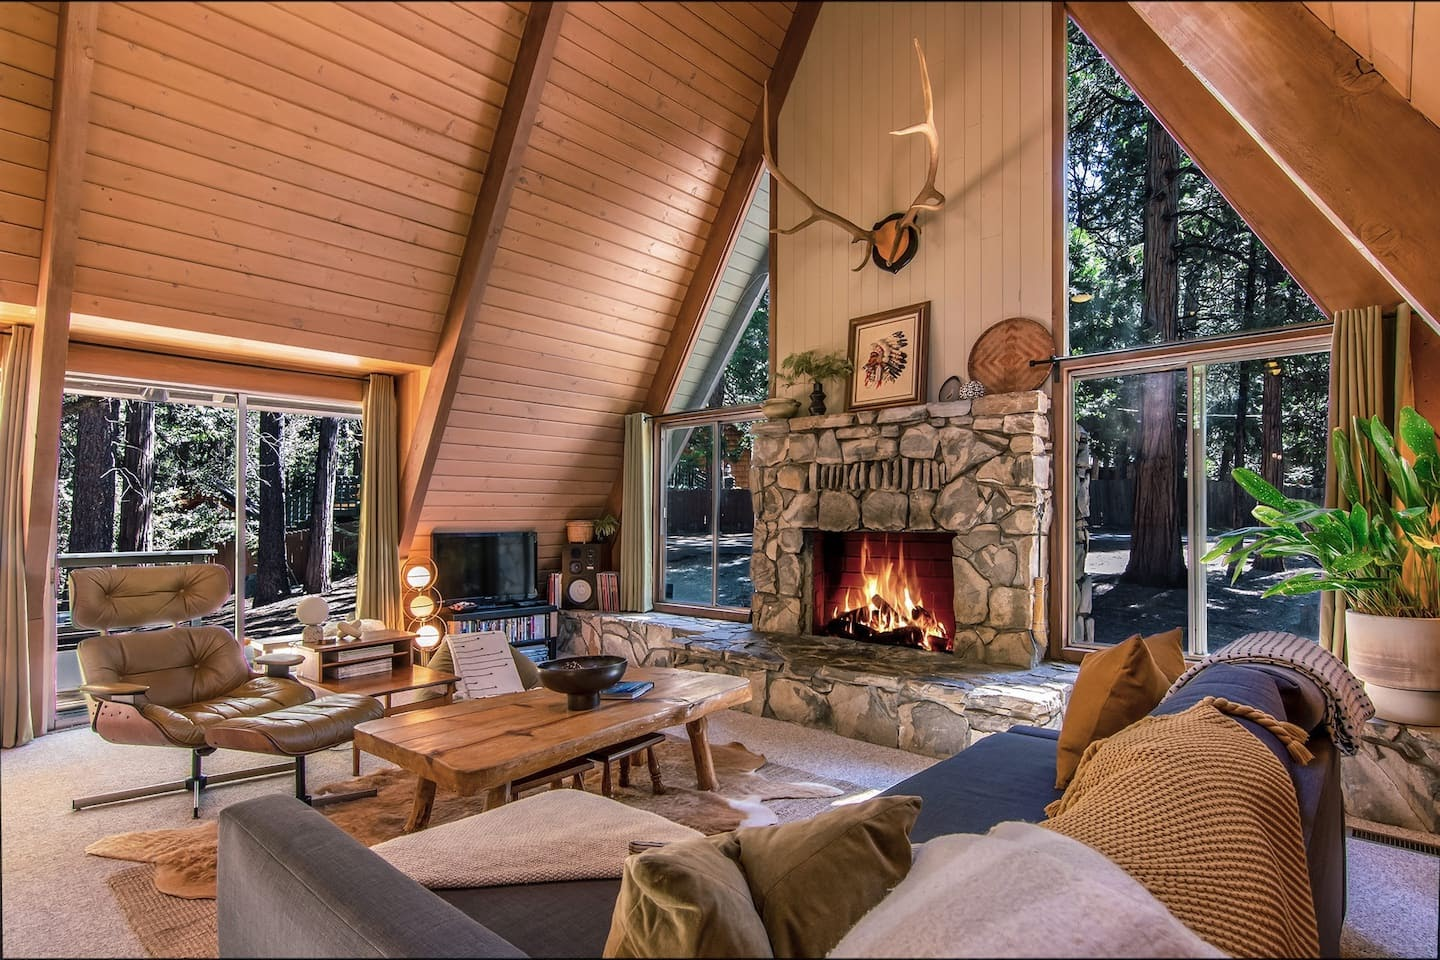 Main living area of The Far Out featuring a slate stone fireplace, grey couch, deer sculpture and wooden walls